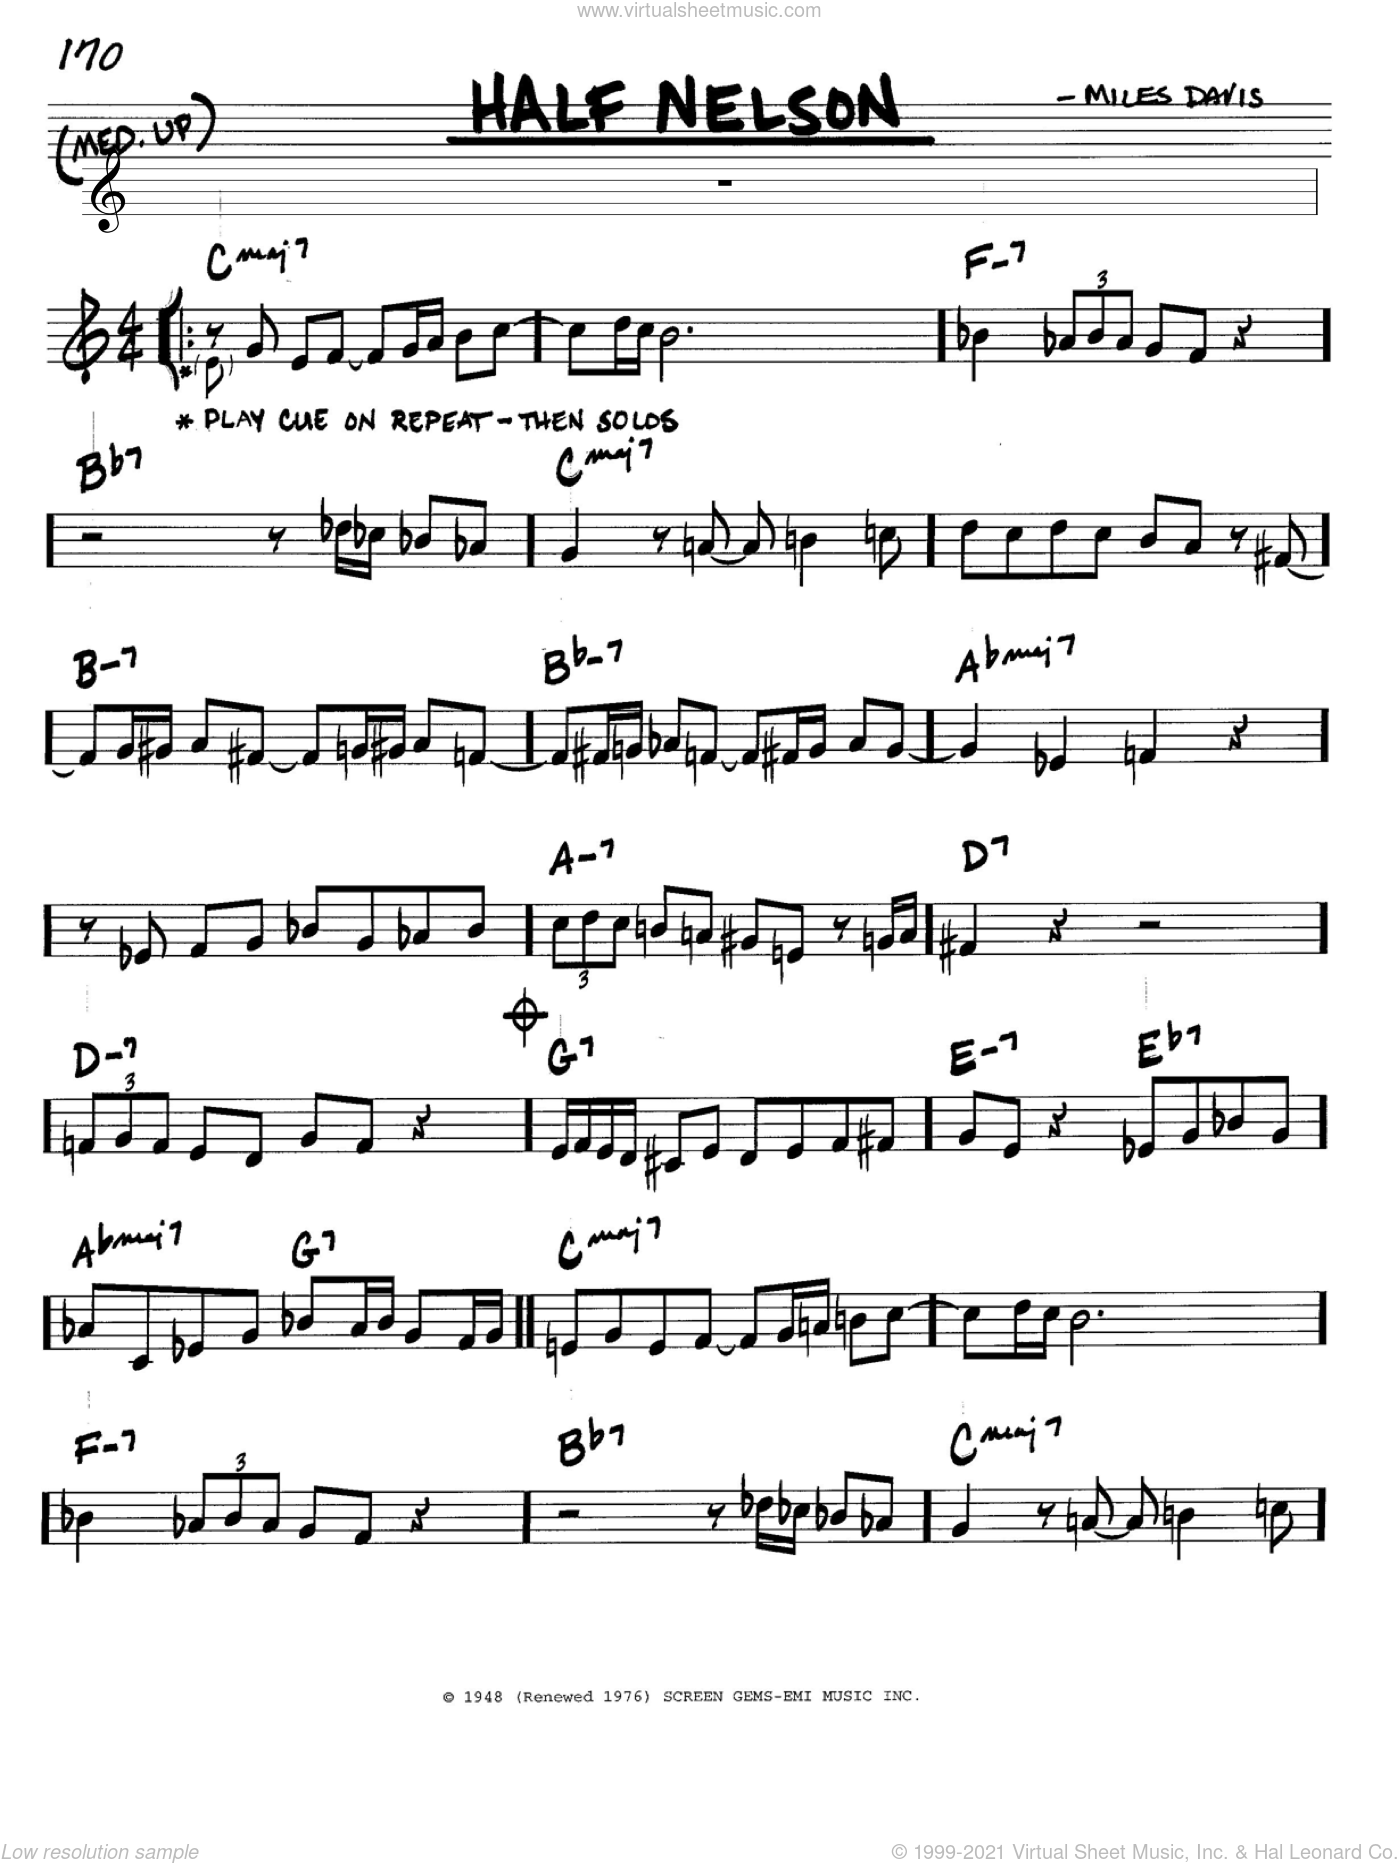 Half Nelson sheet music for voice and other instruments (in C) by Miles Davis, intermediate skill level